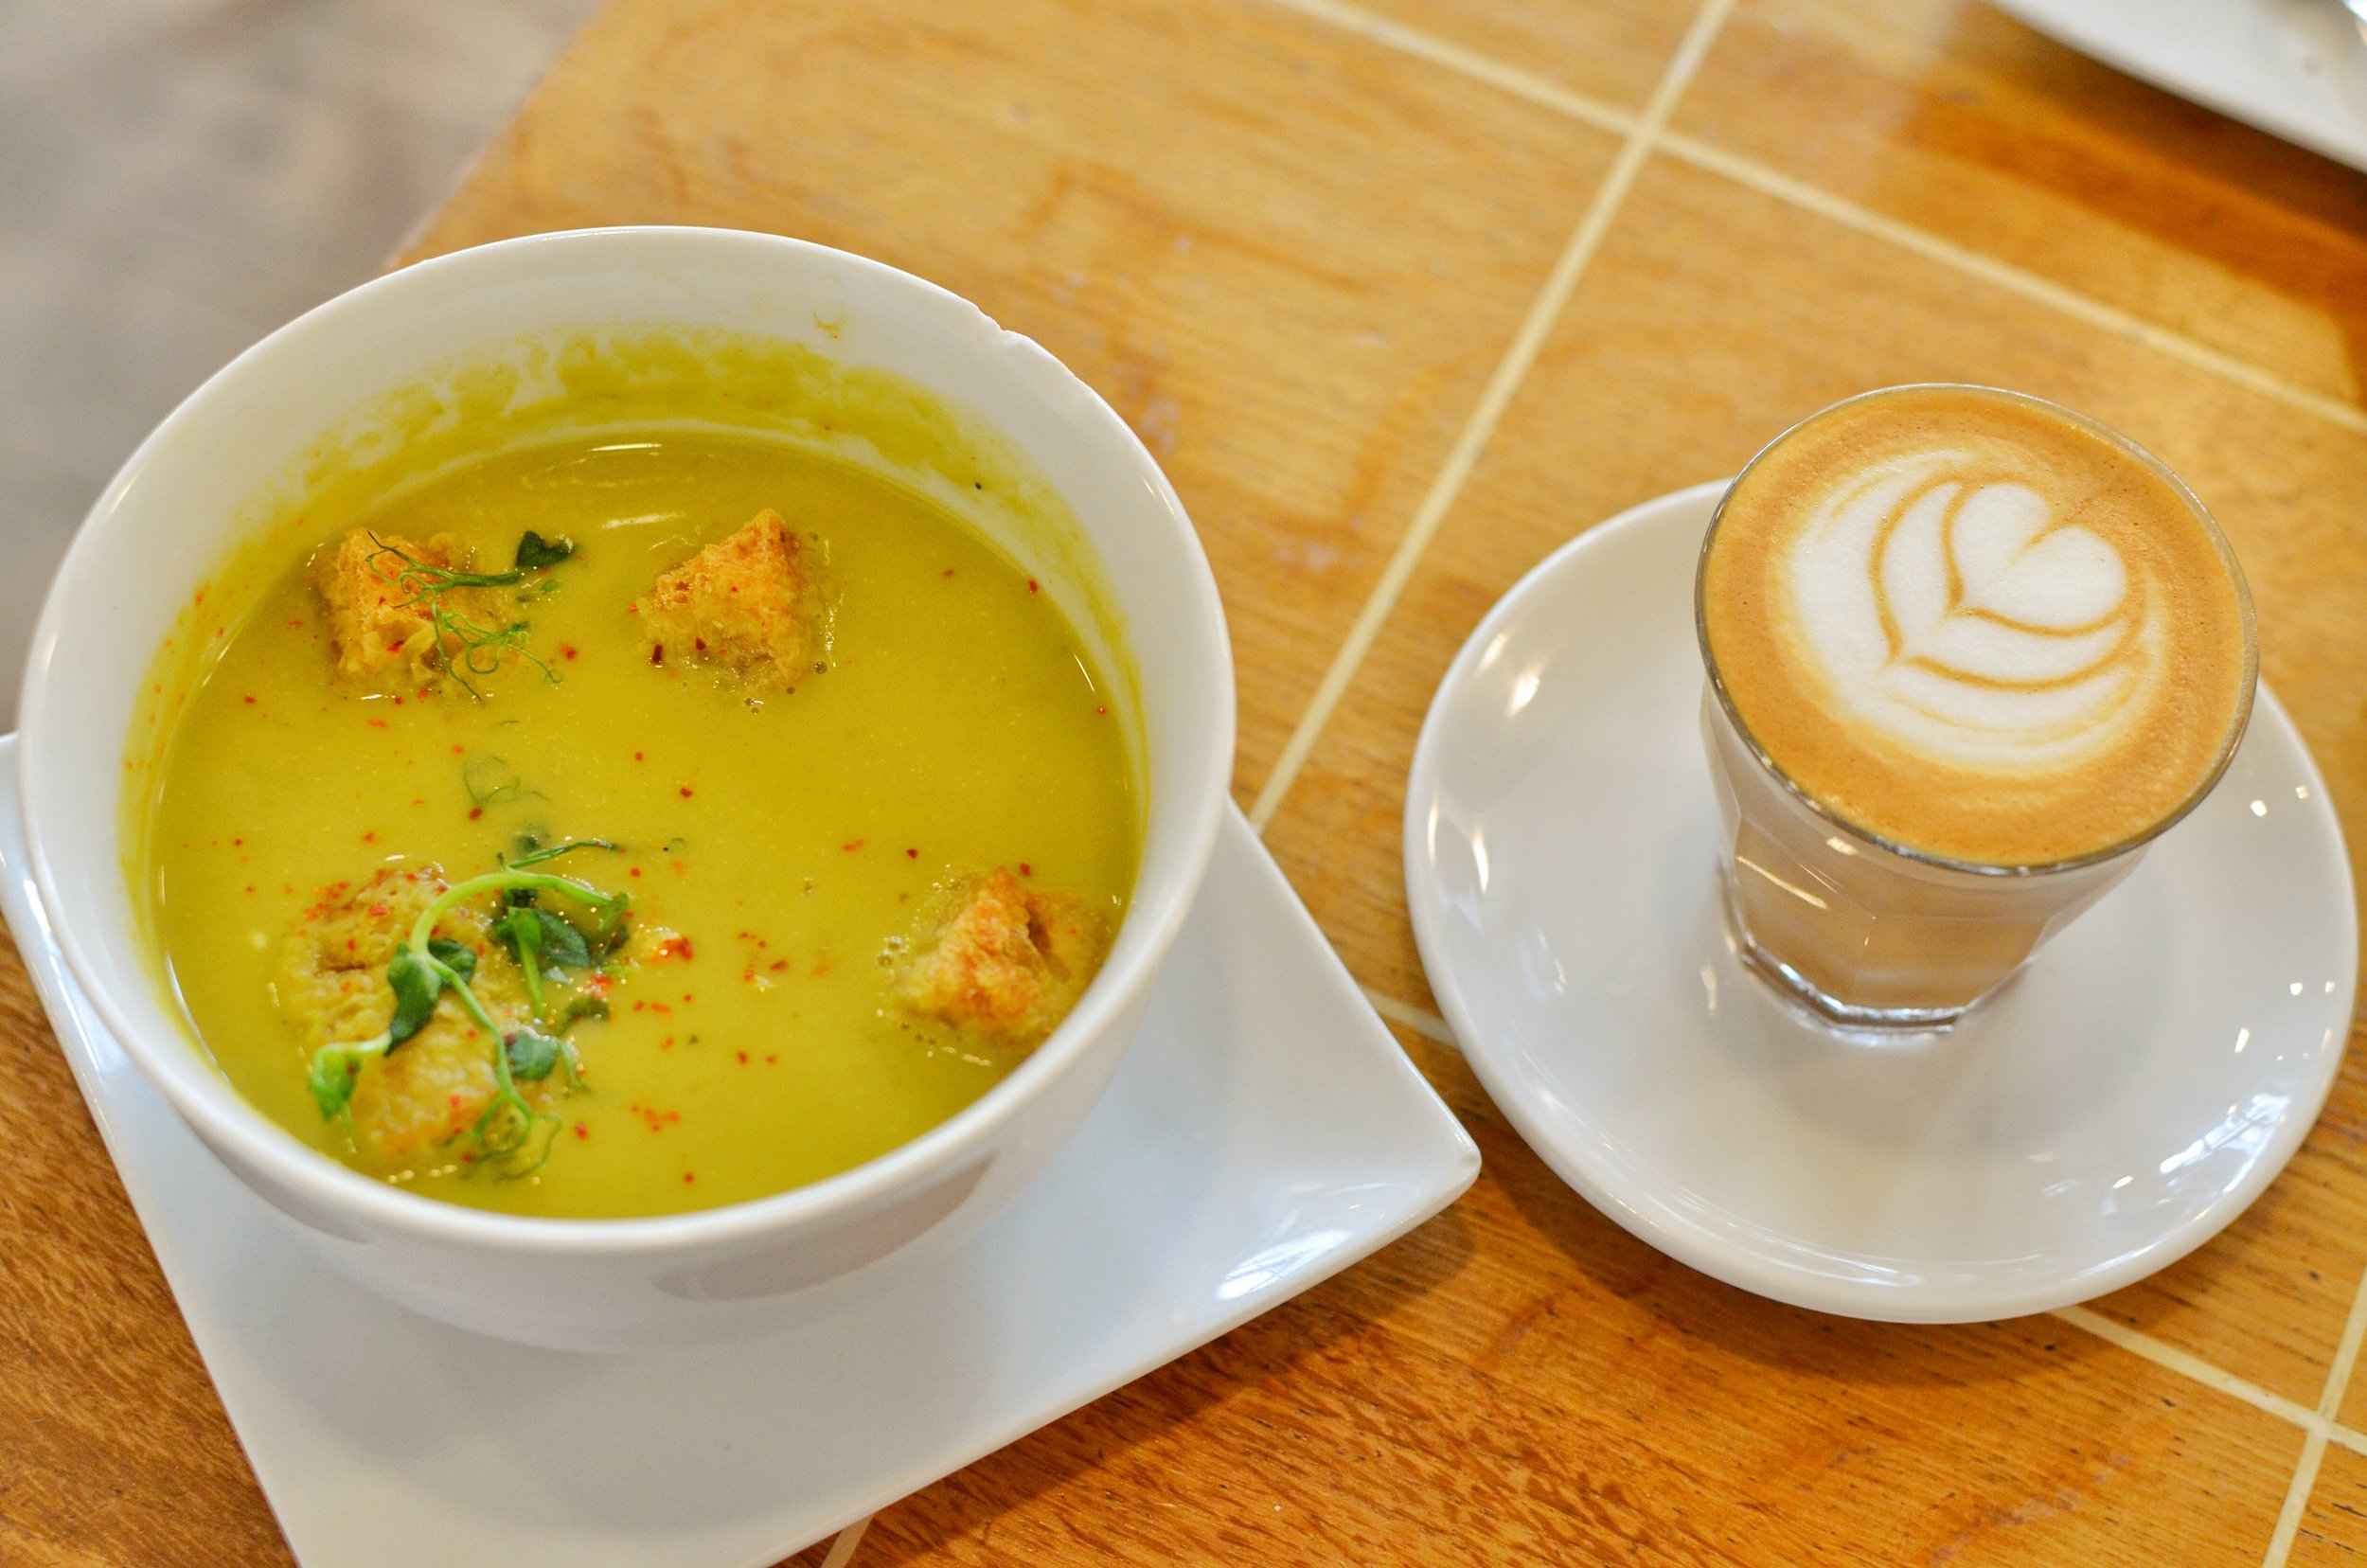 Split pea soup and cortado- The split pea soup was creamy and delicious. The cortado was the perfect way to wake up!